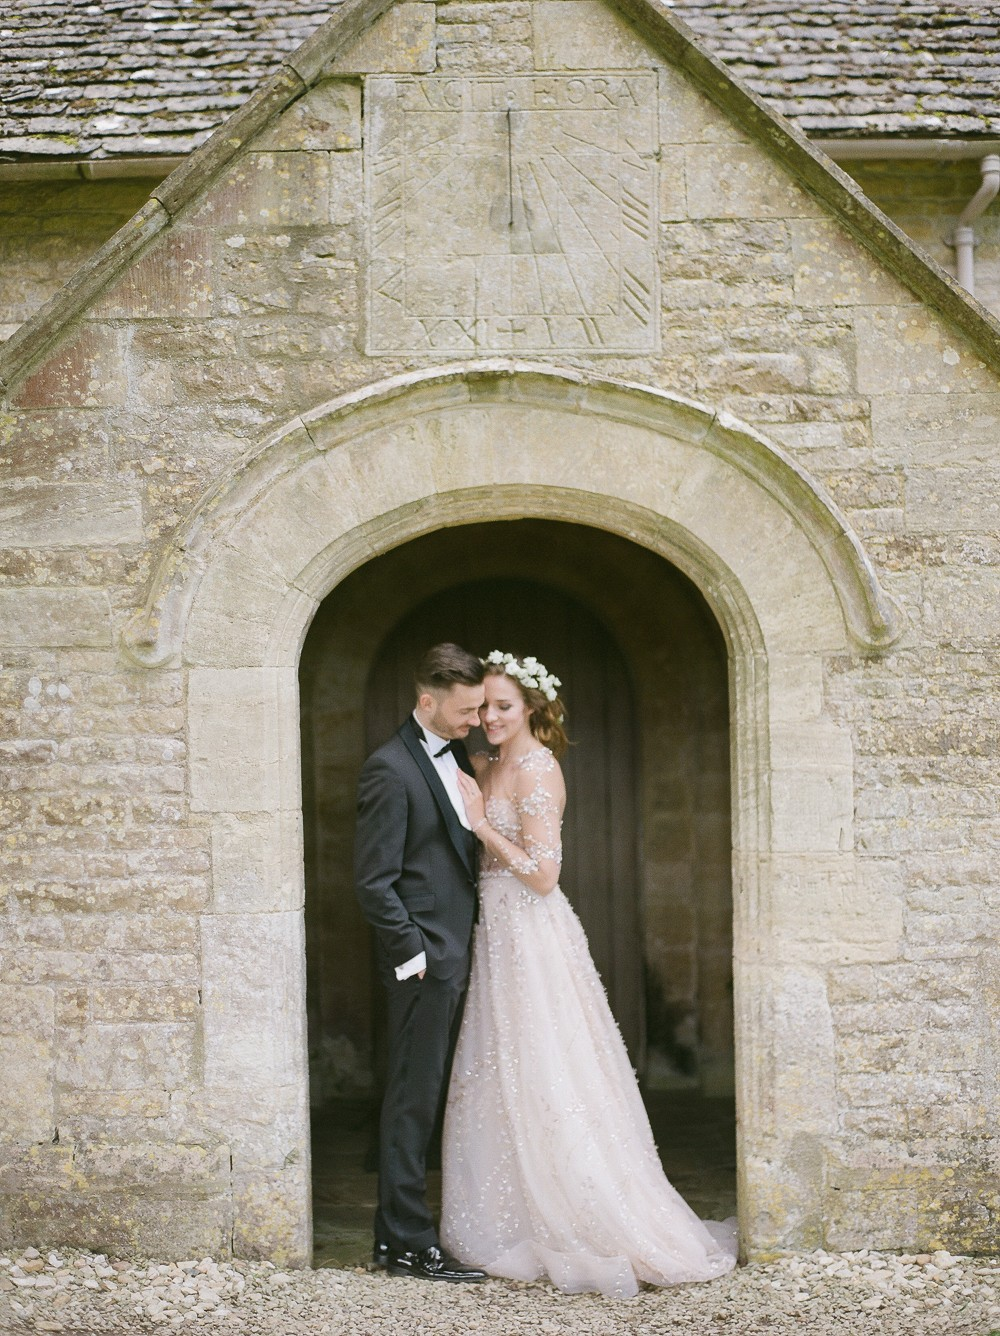 A classic English wedding with a touch of whimsical glam